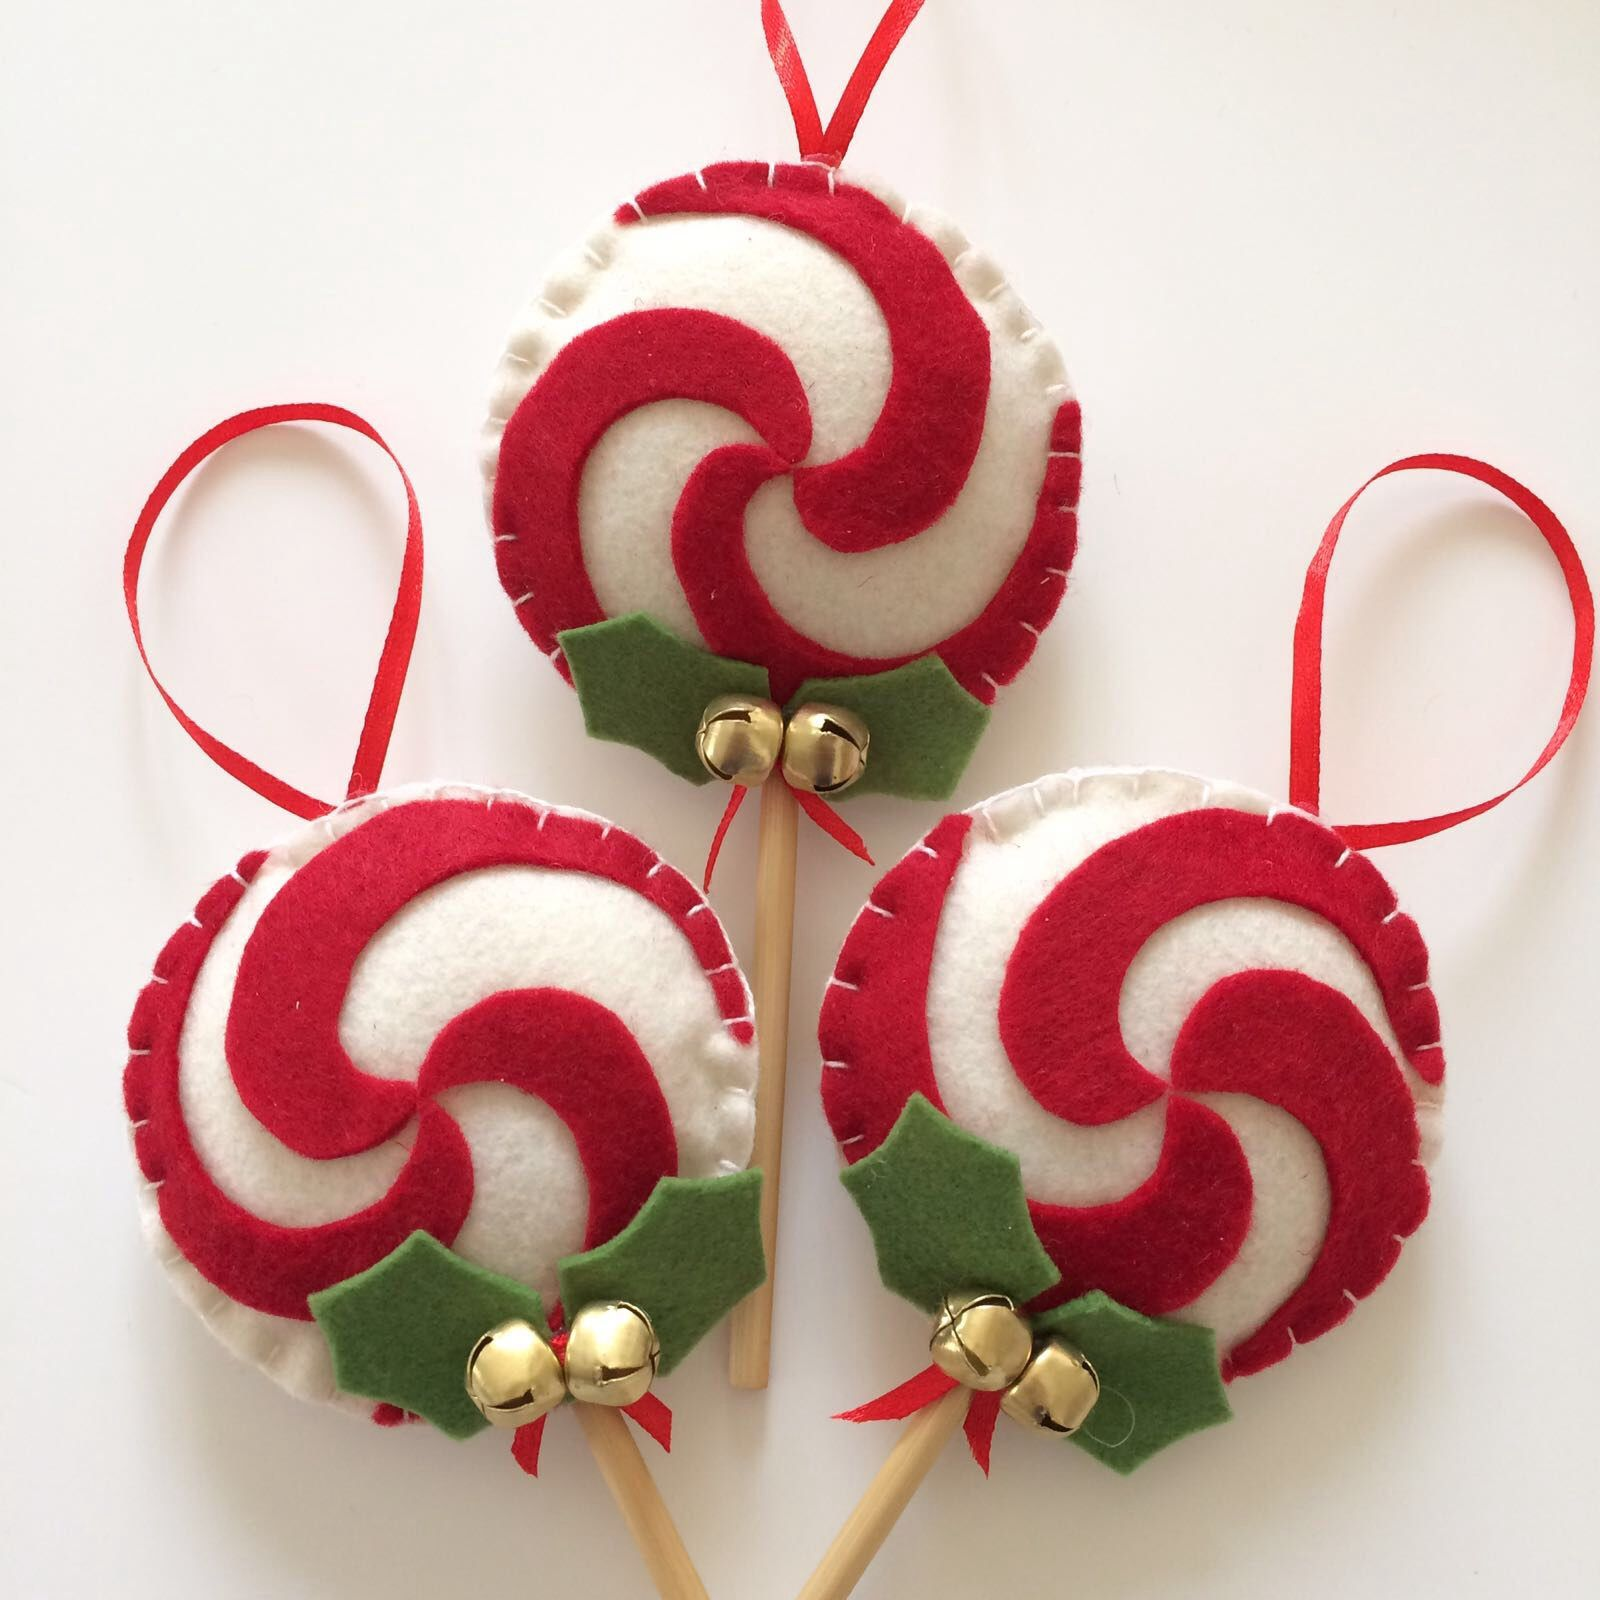 lollipop christmas decorations in soft felt and with rattle by momsbunny on etsy https - Lollipop Christmas Decorations